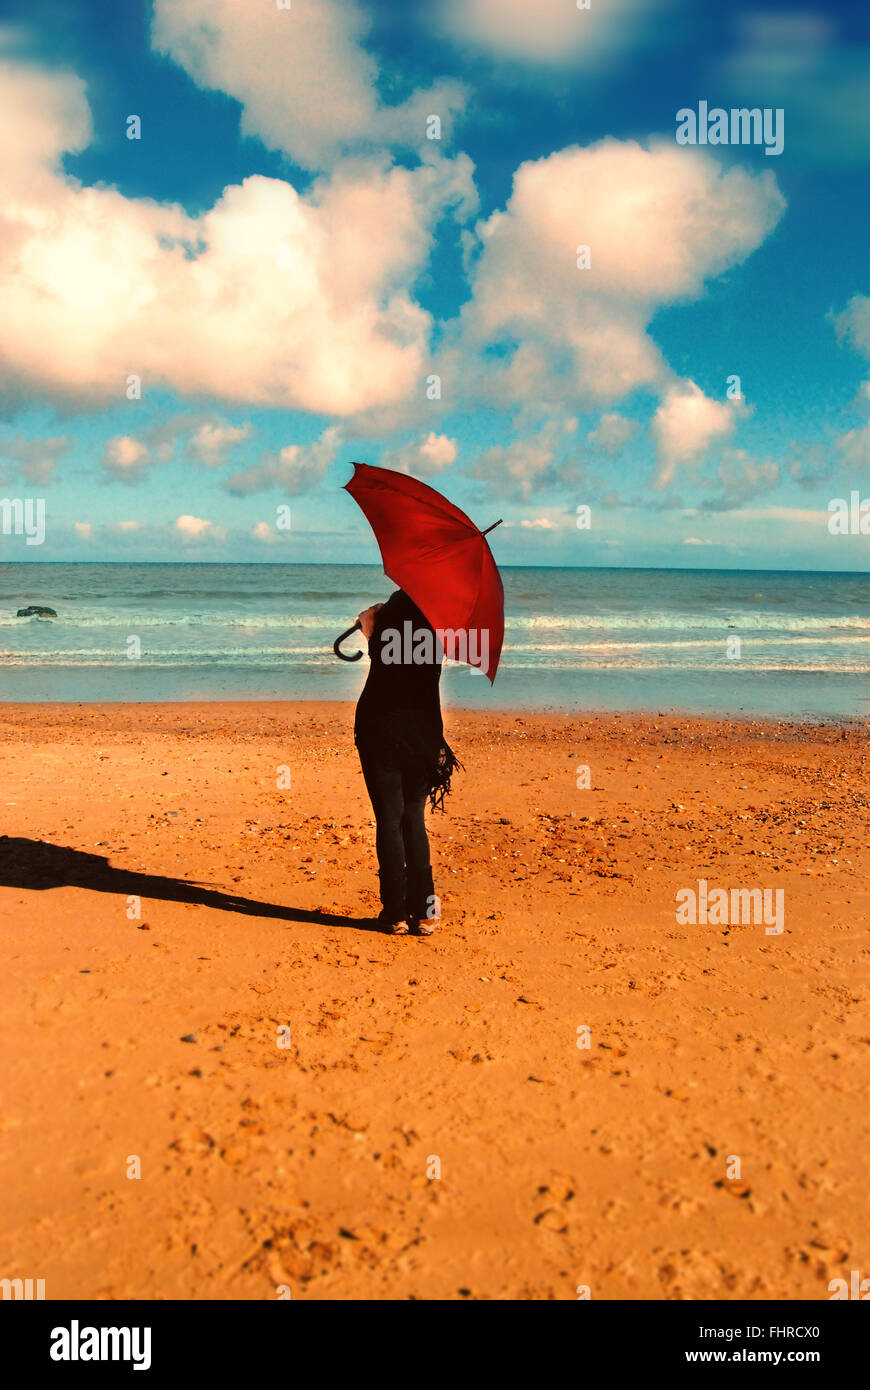 woman with red umbrella standing on sunny beach - Stock Image